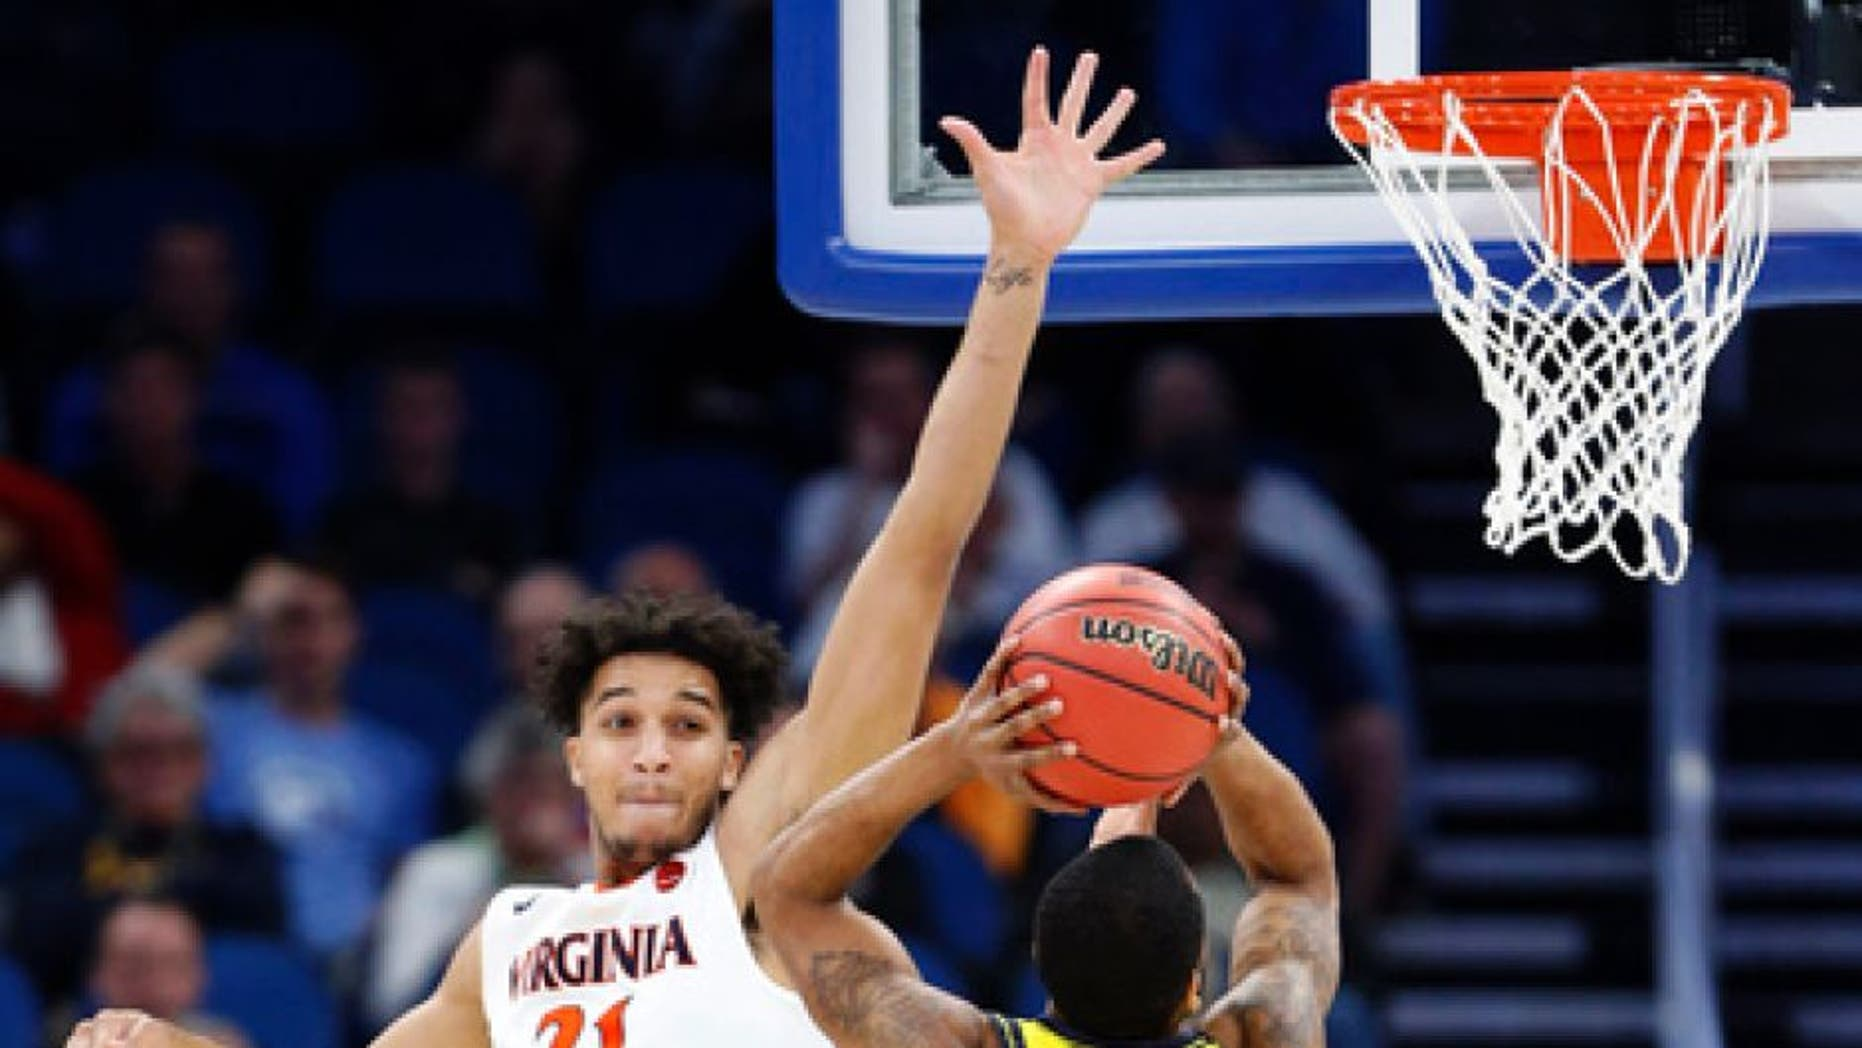 UNC Wilmington guard Jordon Talley (4) goes up for a shot against Virginia forward Isaiah Wilkins (21) and guard Devon Hall during the first half of a first-round men's college basketball game in the NCAA Tournament, Thursday, March 16, 2017, in Orlando, Fla. Virginia defeated UNC Wilmington 76-71. (AP Photo/Wilfredo Lee)